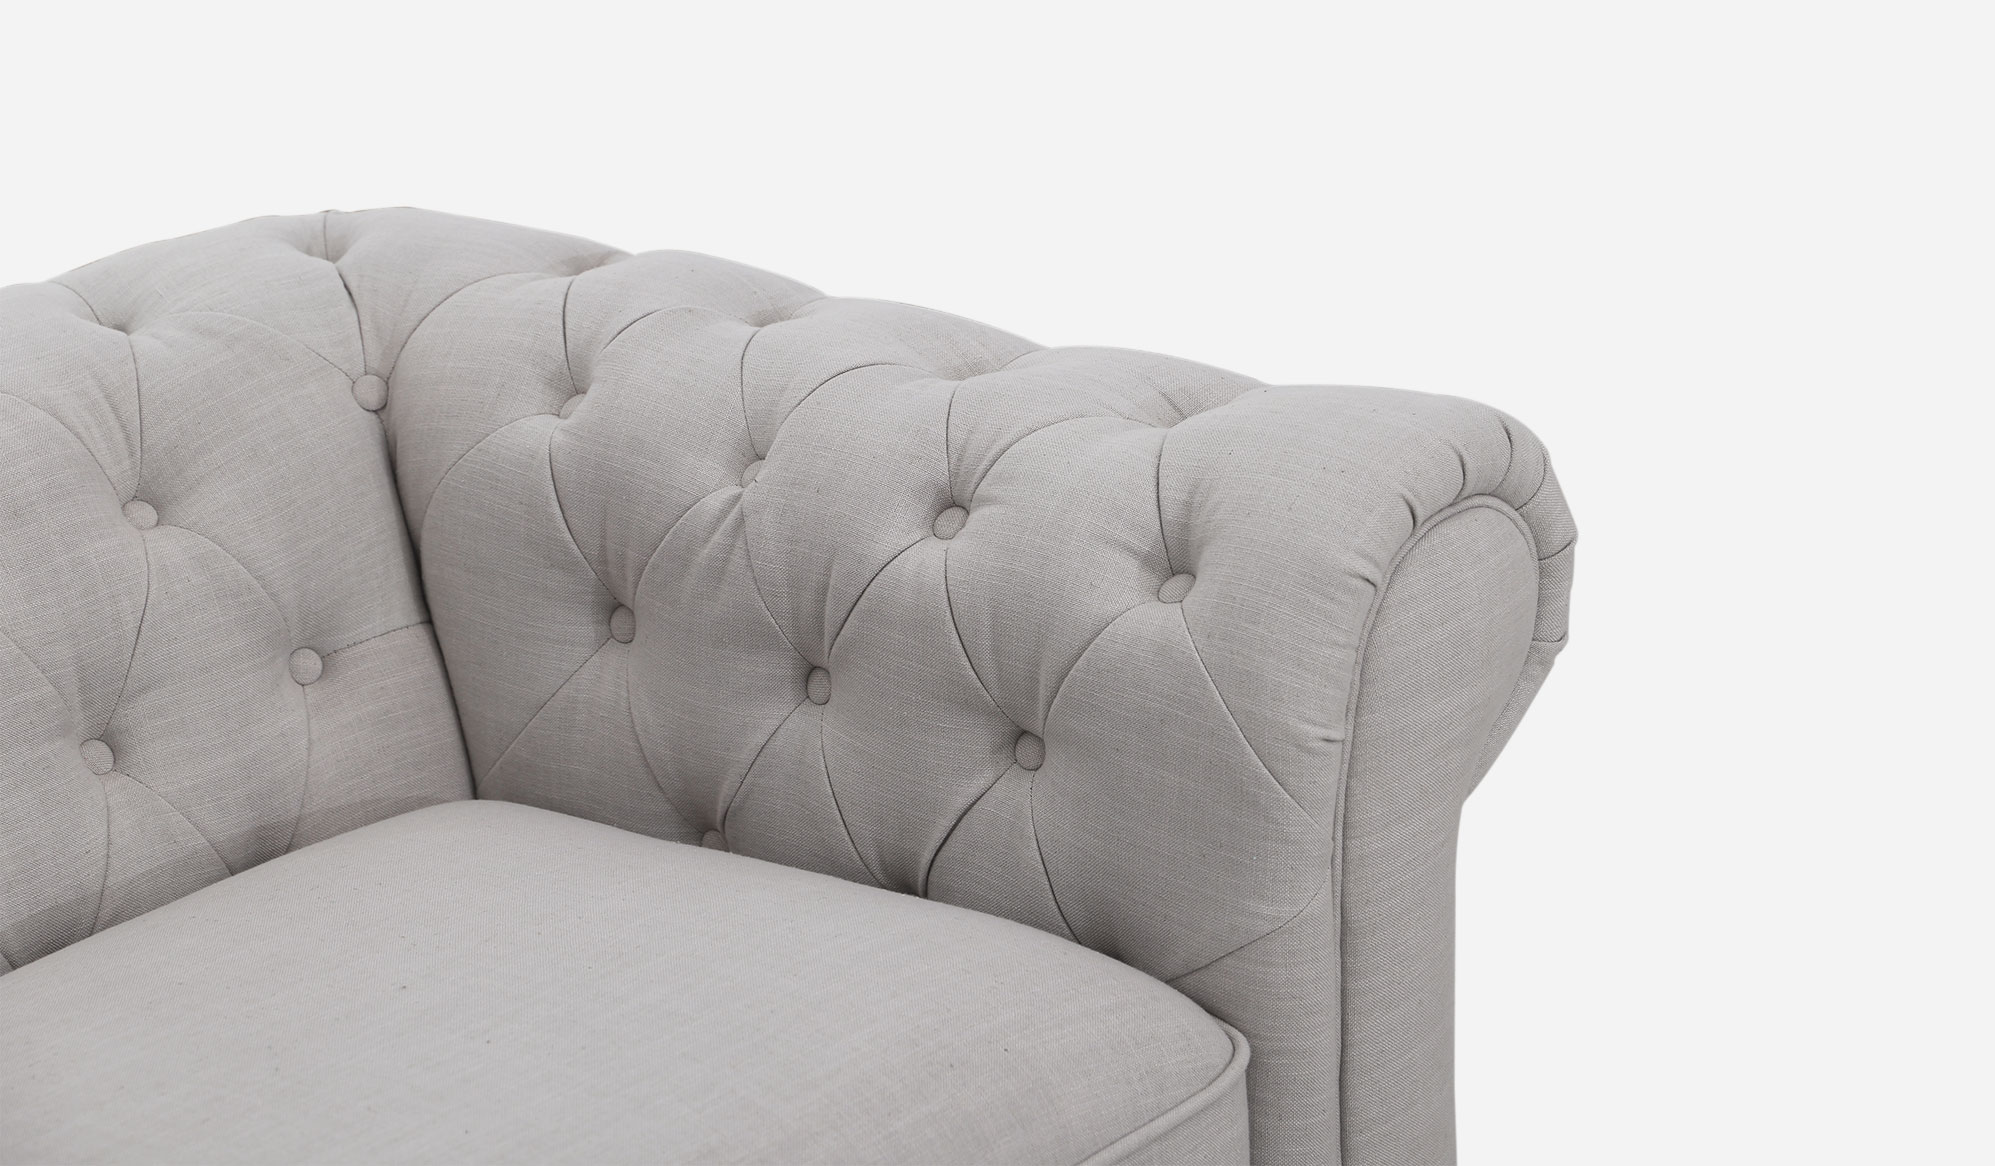 White Chesterfield Chair - A classically elegant sofa the buttoning adds texture shape and volume to the piece while the scrolled arms bring just the right amount of gentlemanly